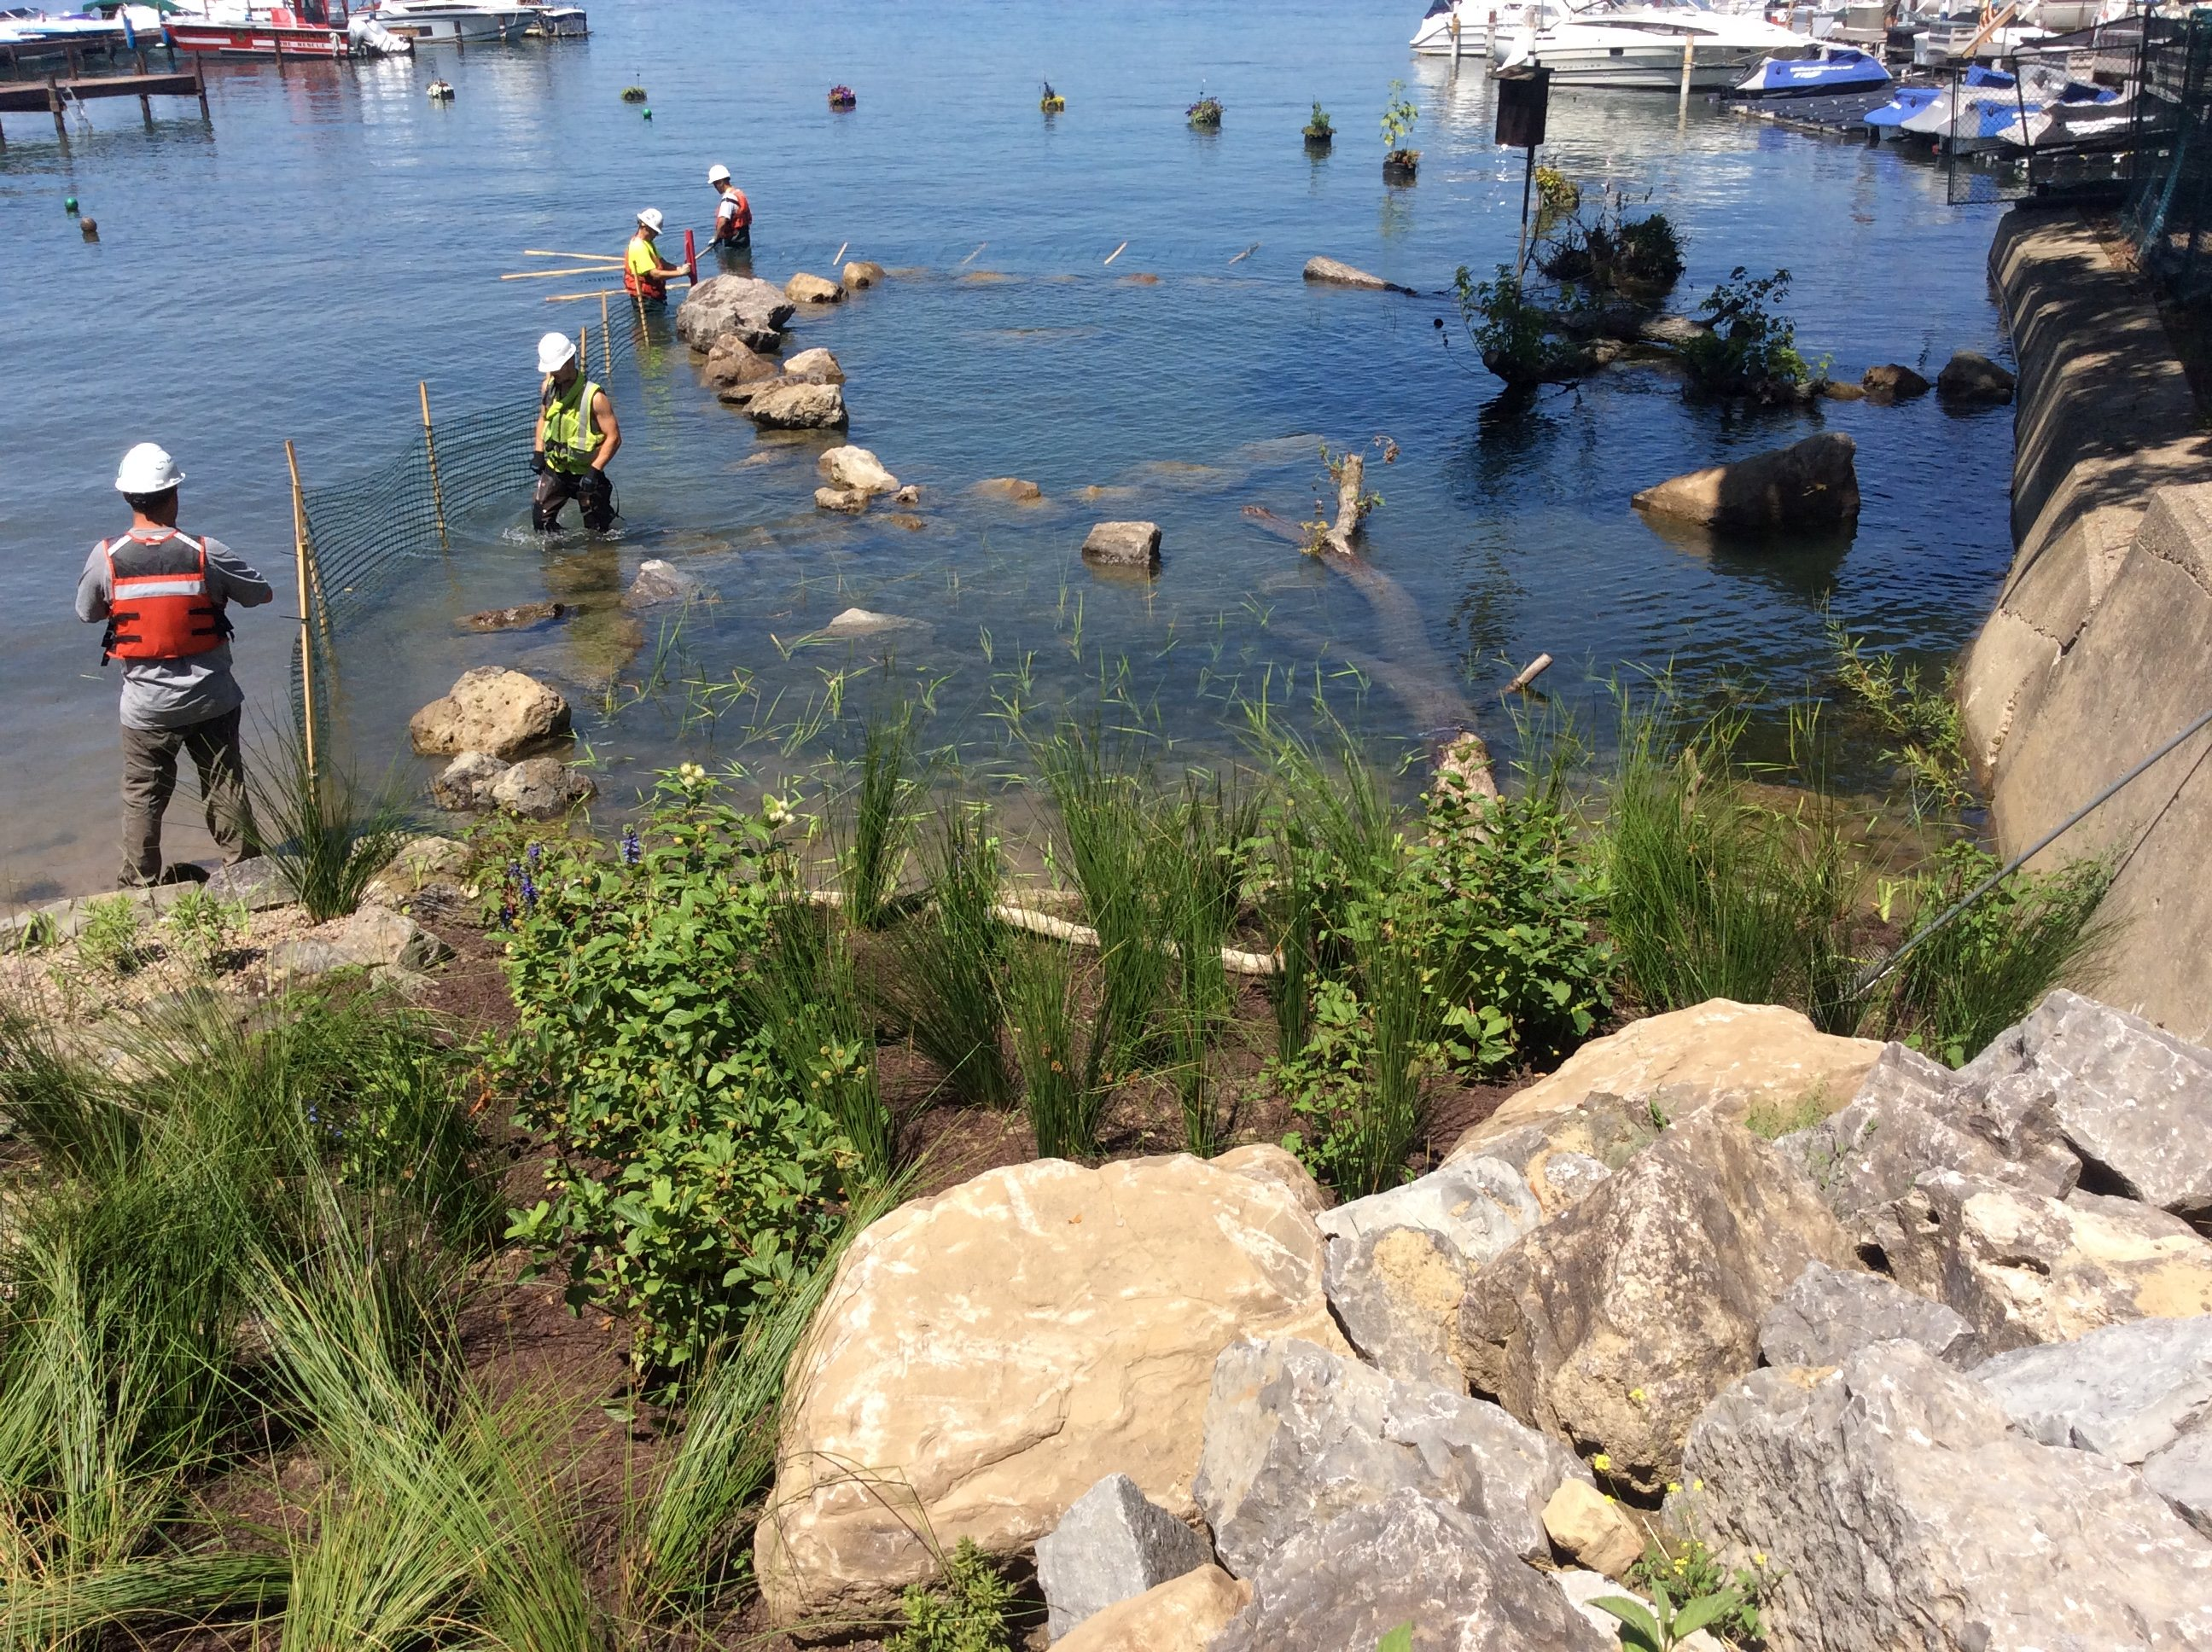 Underwater plantings were placed in the Niagara River last spring to aid in habitat for aquatic life near the Sandy Beach Park Club on Grand Island. (Buffalo Niagara Riverkeeper image)